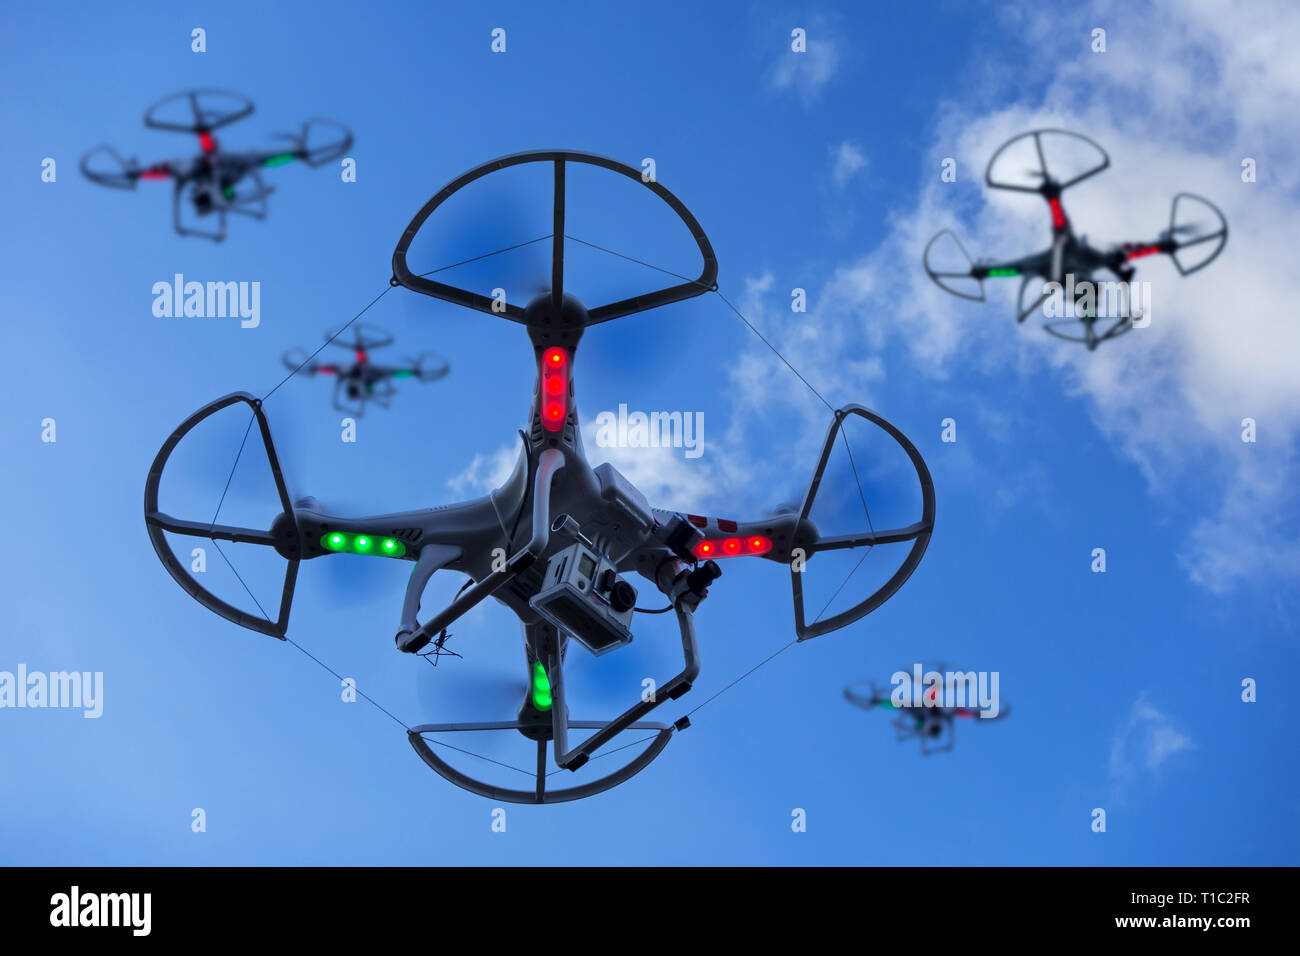 Group of miniature drones / unmanned aerial vehicles / UAV equipped with camera in flight against blue sky with clouds - Stock Image